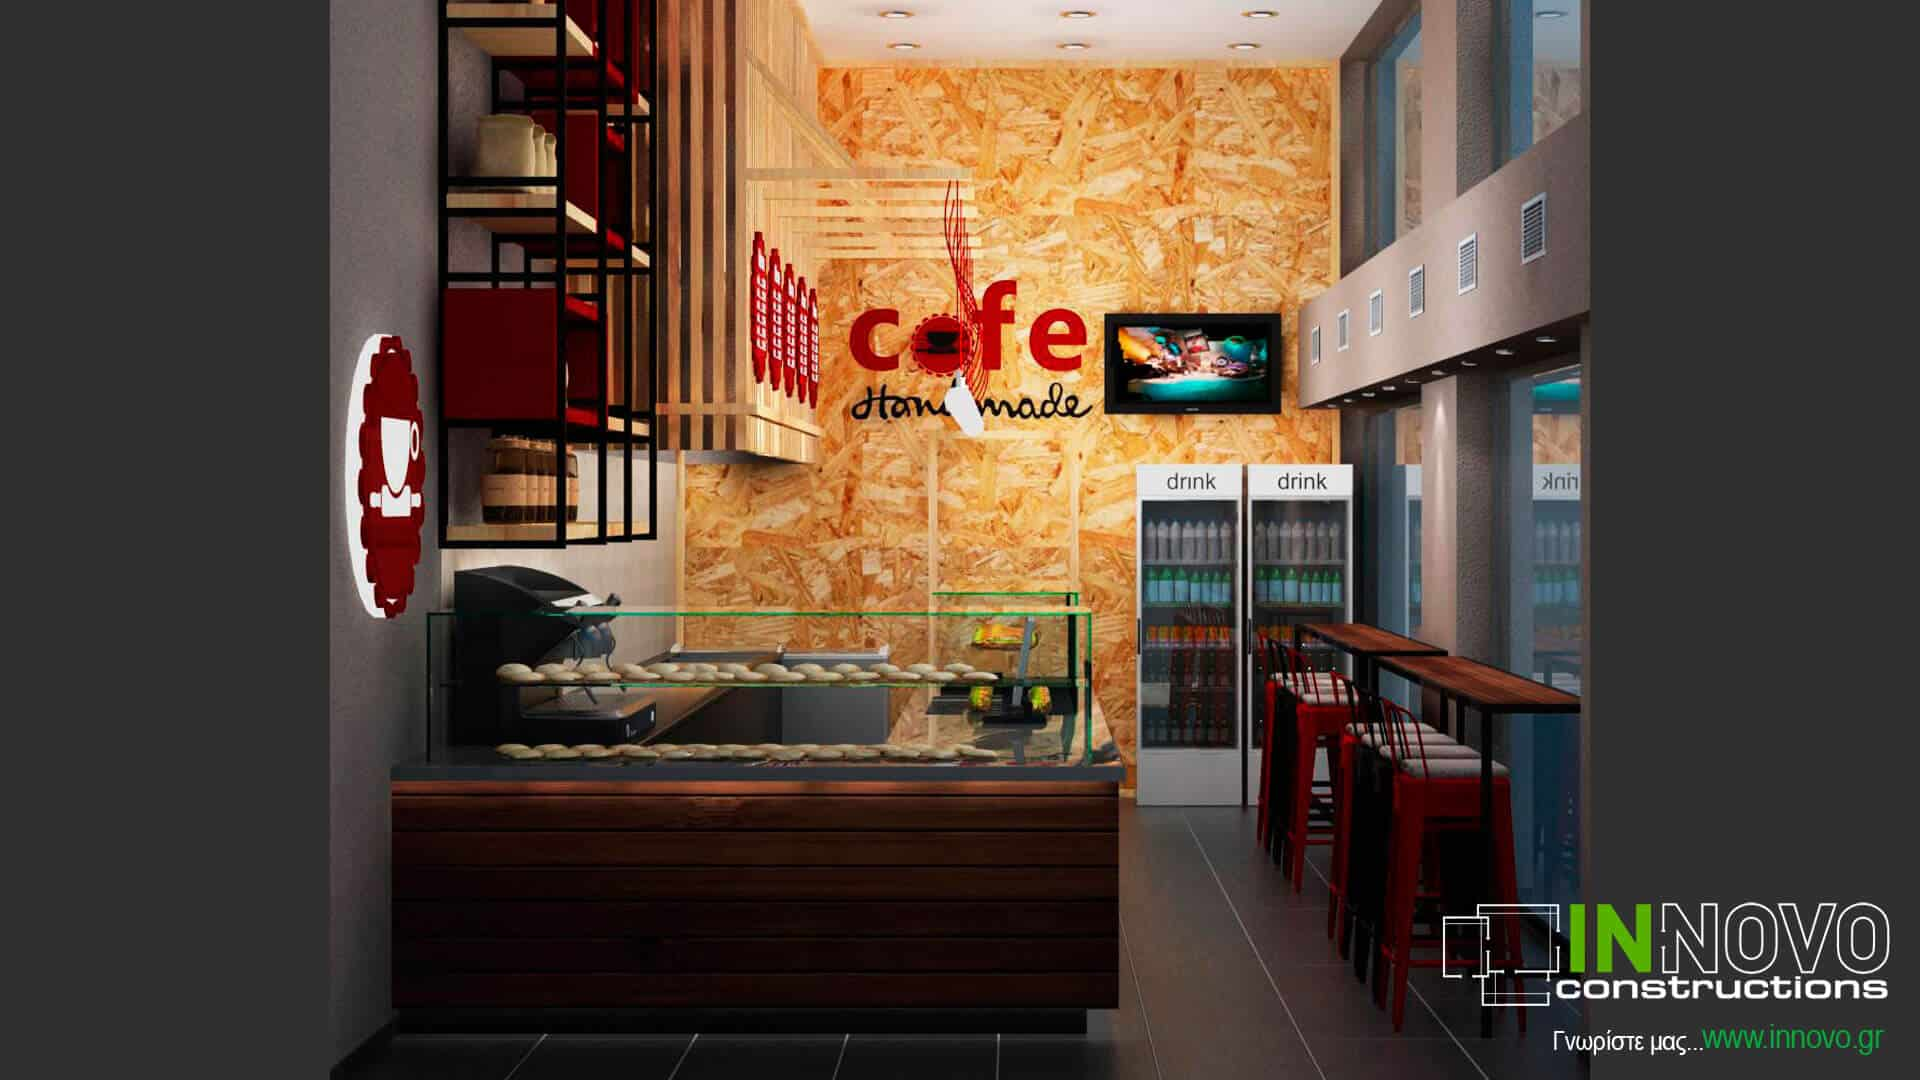 kataskevi-snack-cafe-construction-cafe-melissia-1720-2